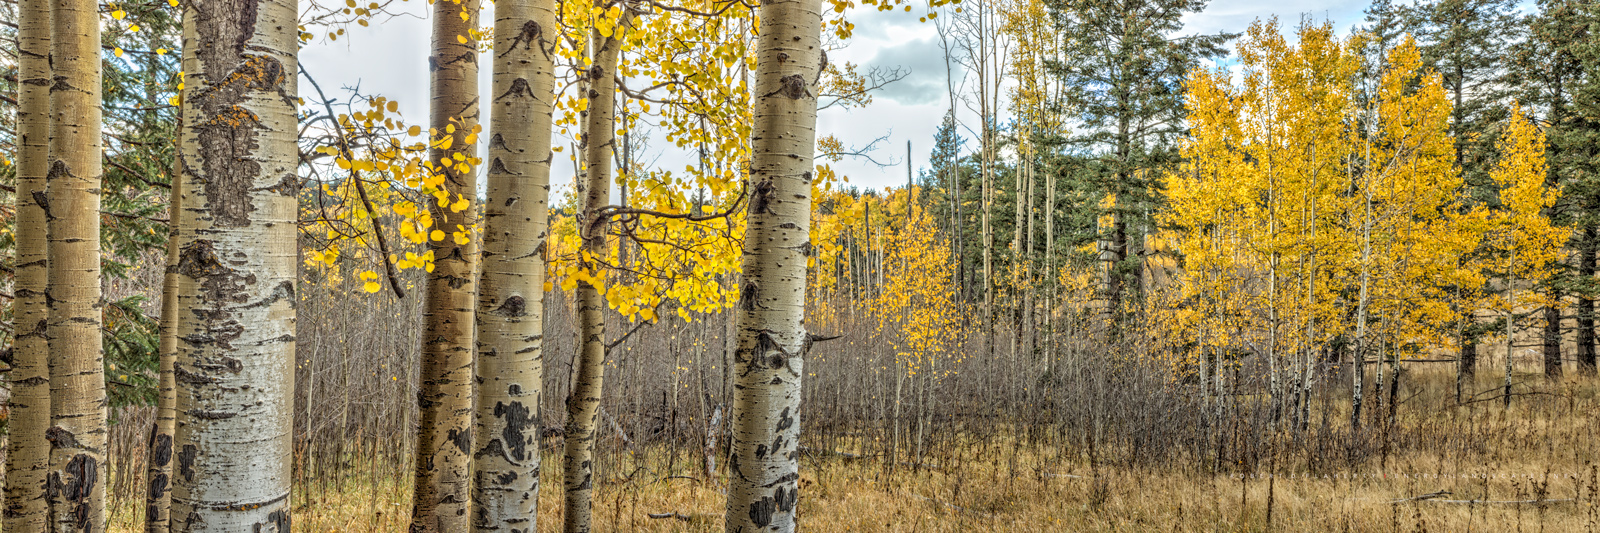 aspen, aspens, panorama, high resolution, Sorra Lighting, Ruidoso, Capitan Mountains, aspen grove,New Mexico fine art landscape photography by Robert D. Flaherty, composite panorama, fine art mural, m, photo